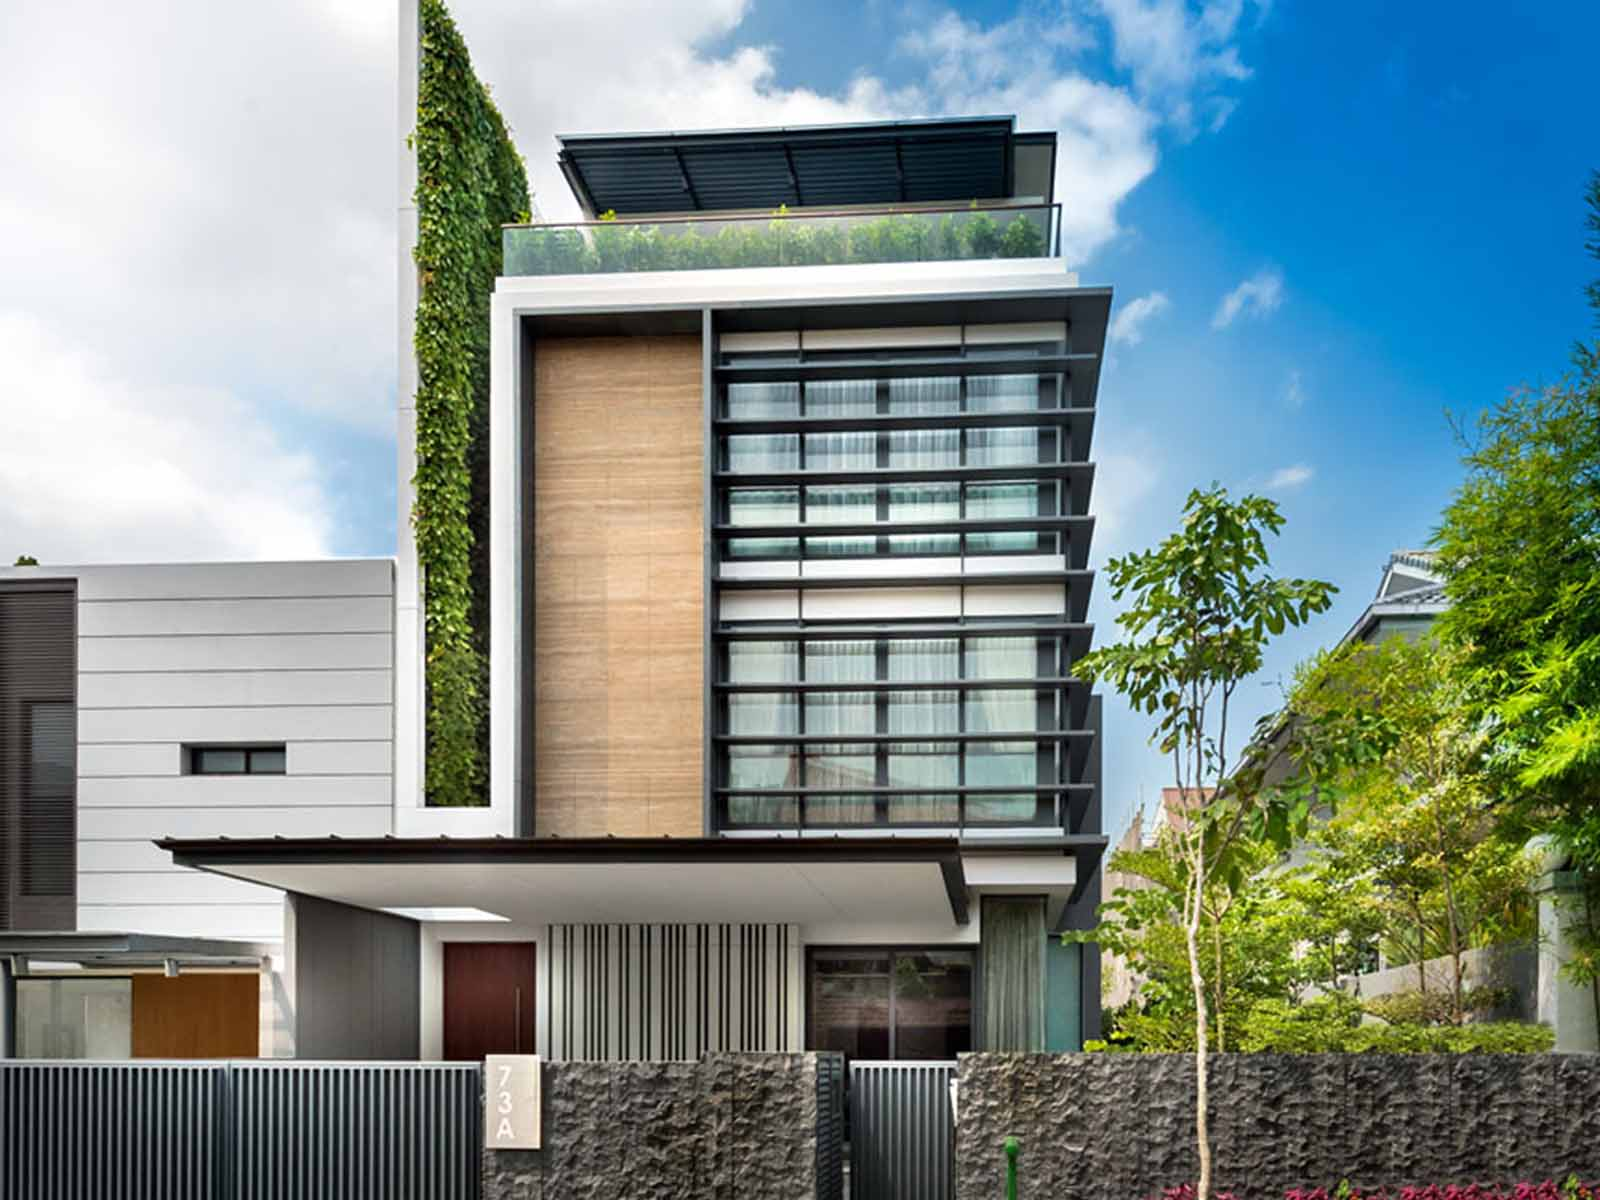 Singapore Residential Property Architect L